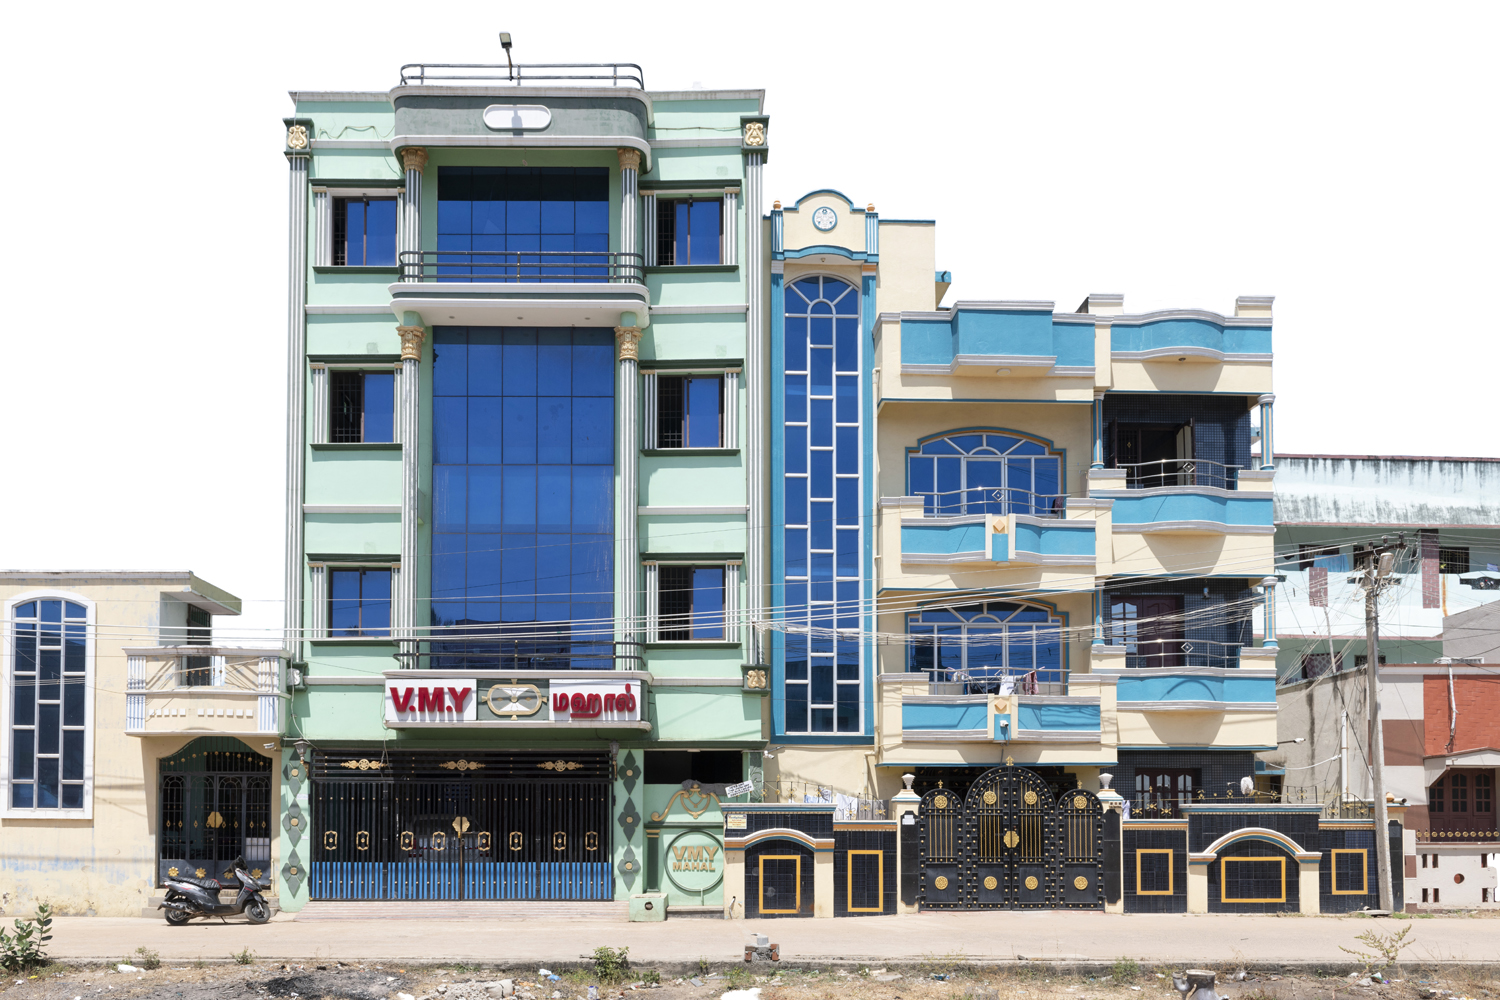 Free Architecture, Kottakuppam, Pondicherry, India